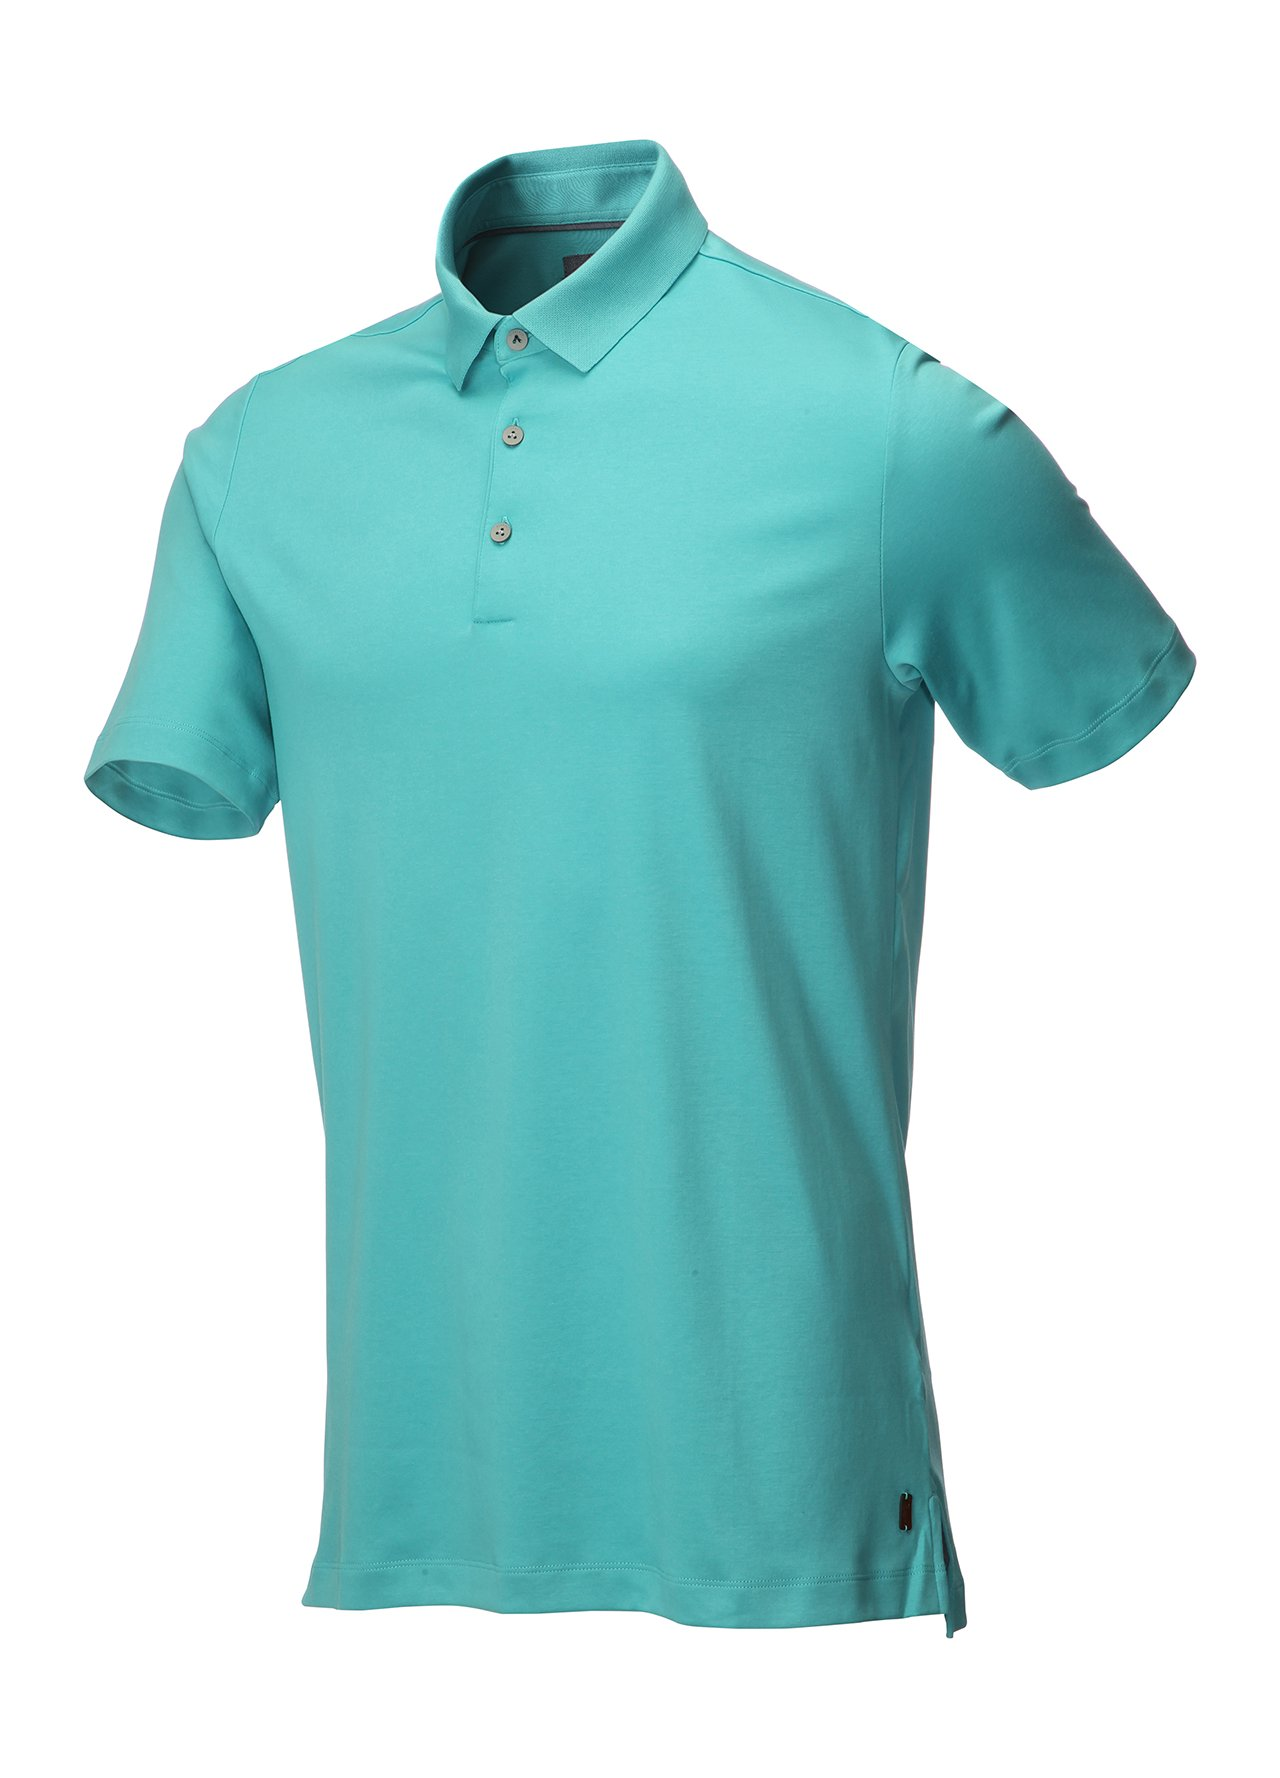 Ashworth mens primatec cotton golf polo shirt sports top